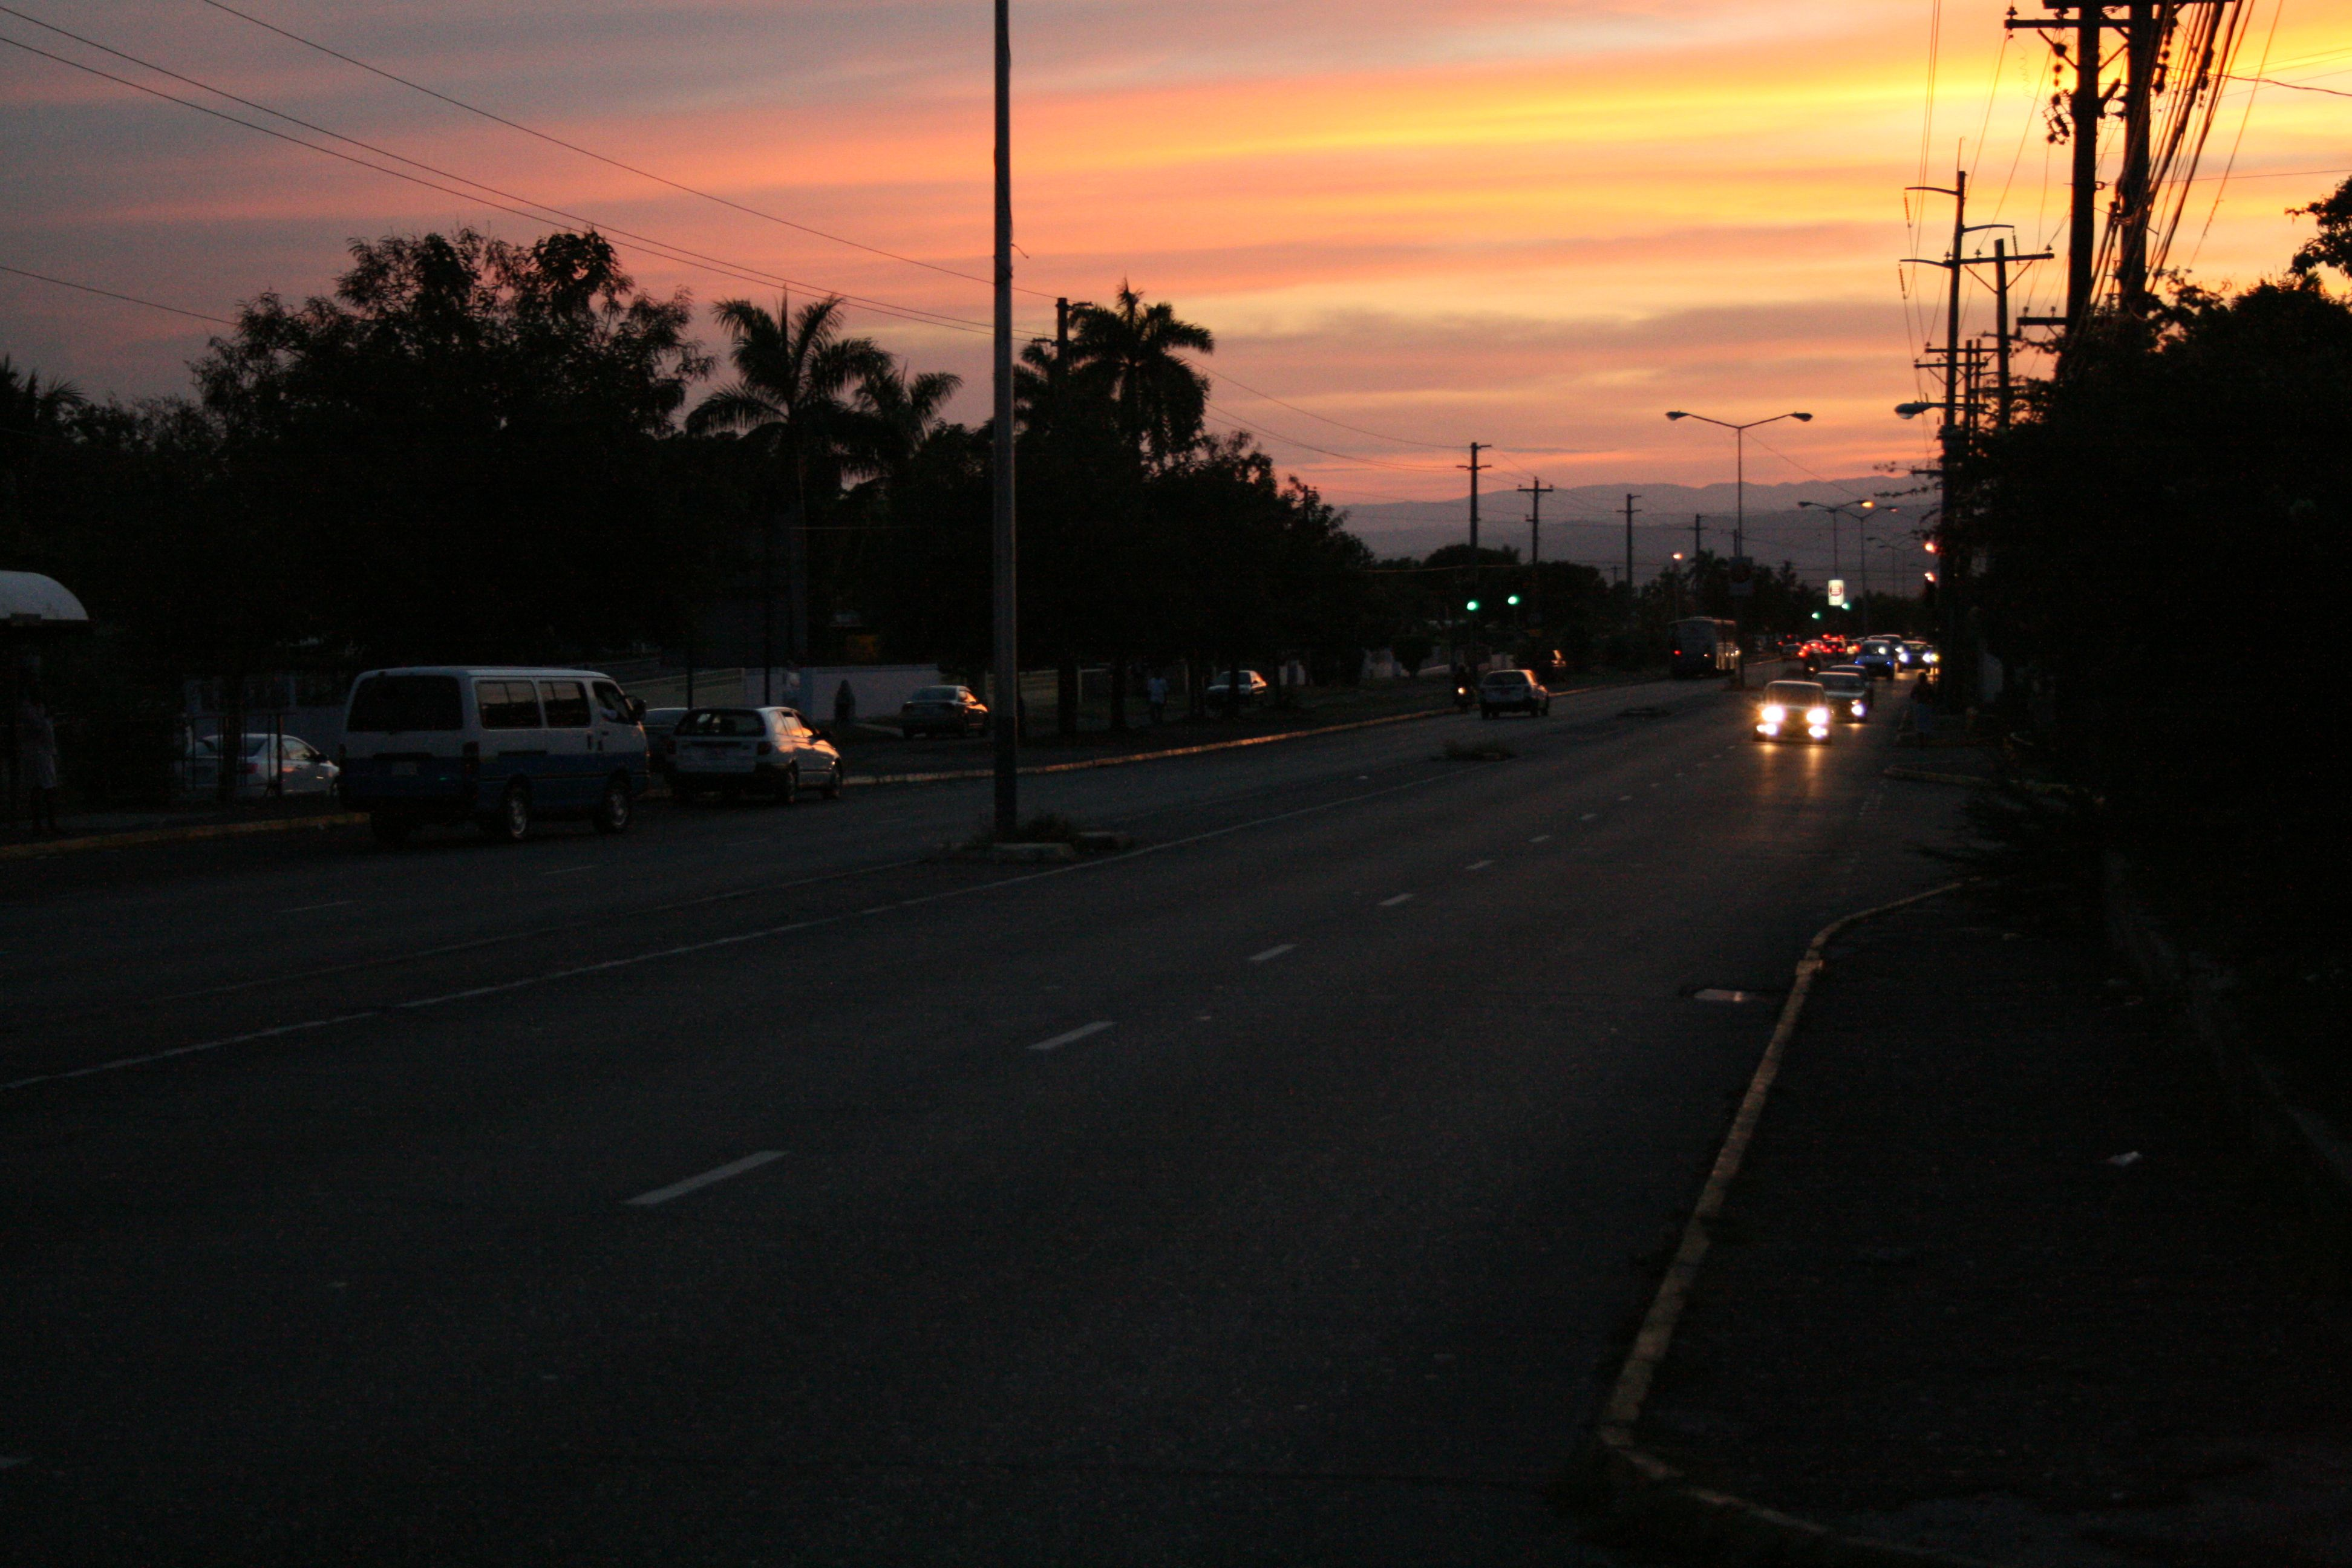 Sunset when leaving school. University of Technology, Papine Campus, St. Andrew, Jamaica